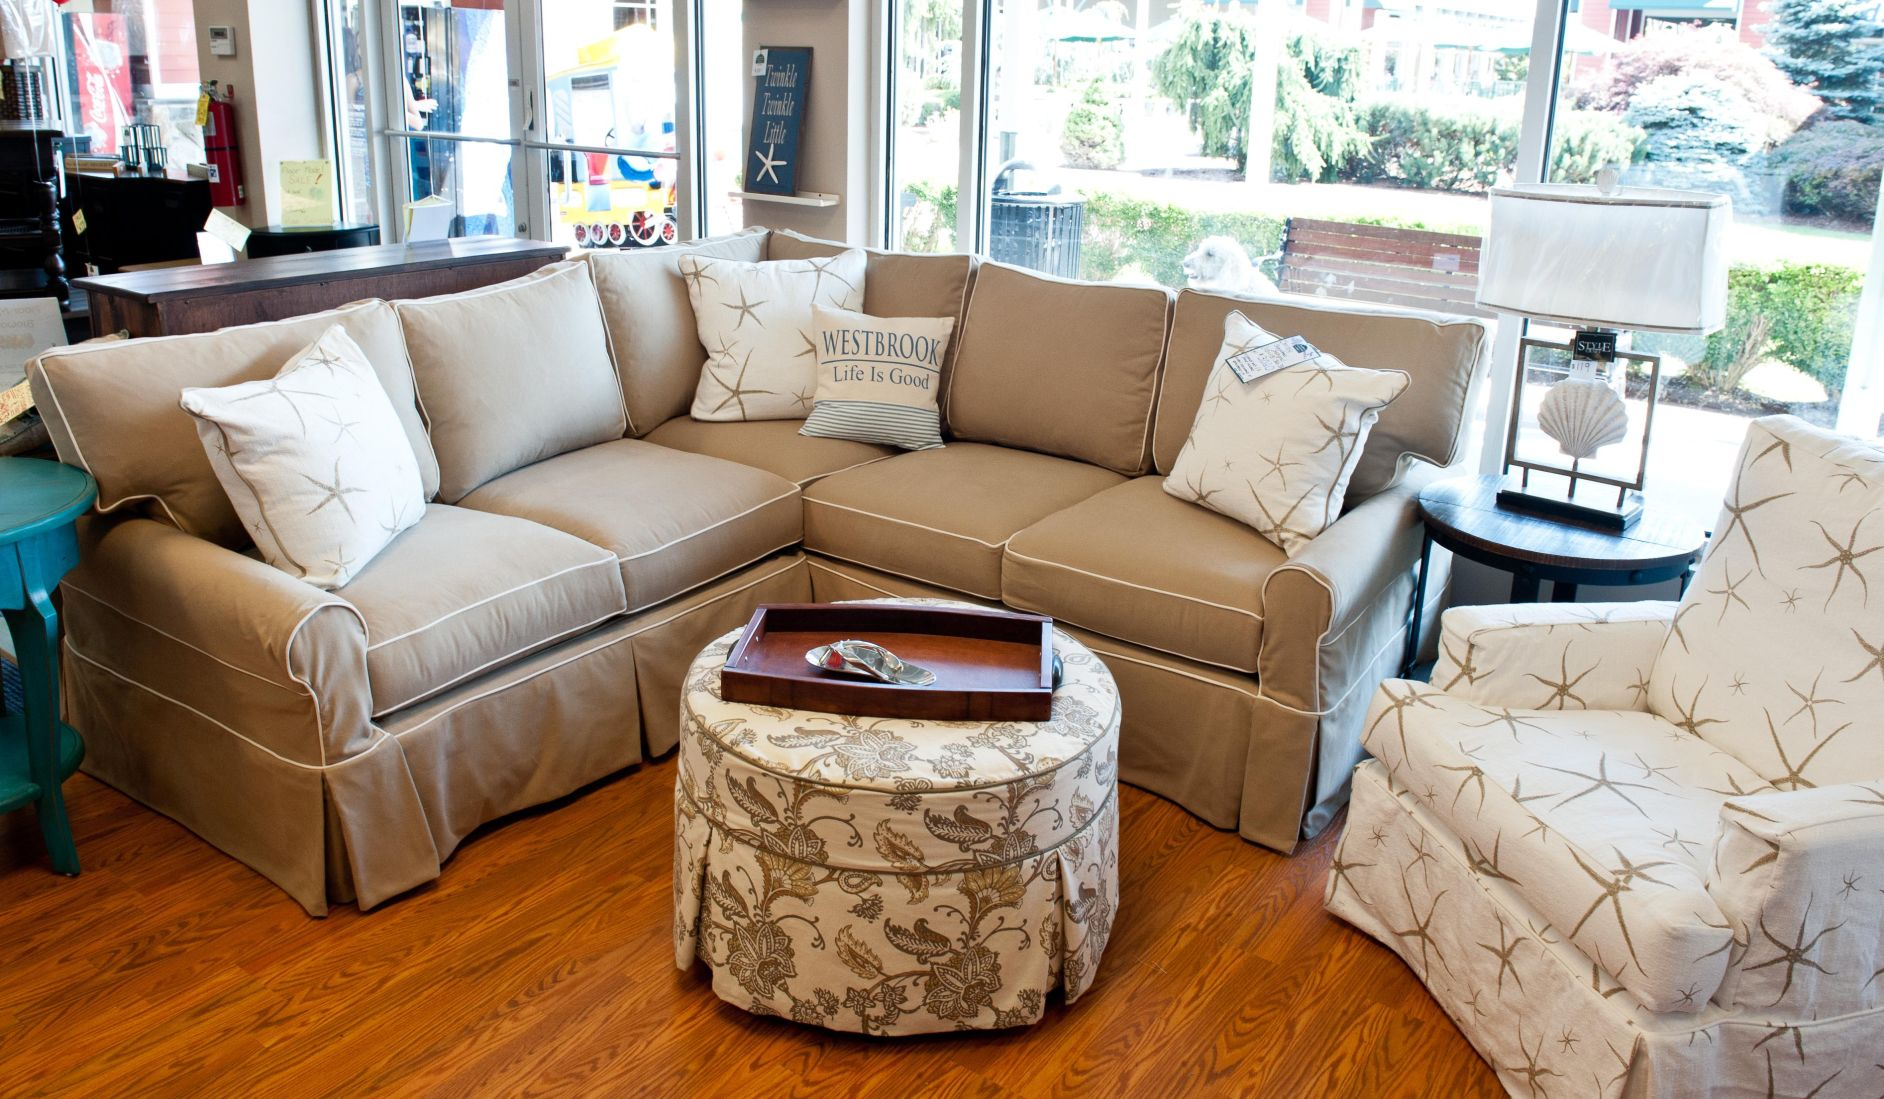 Best Classic Furniture Store, Best Contemporary Furniture Store: Madison  Furniture Barn, Westbrook